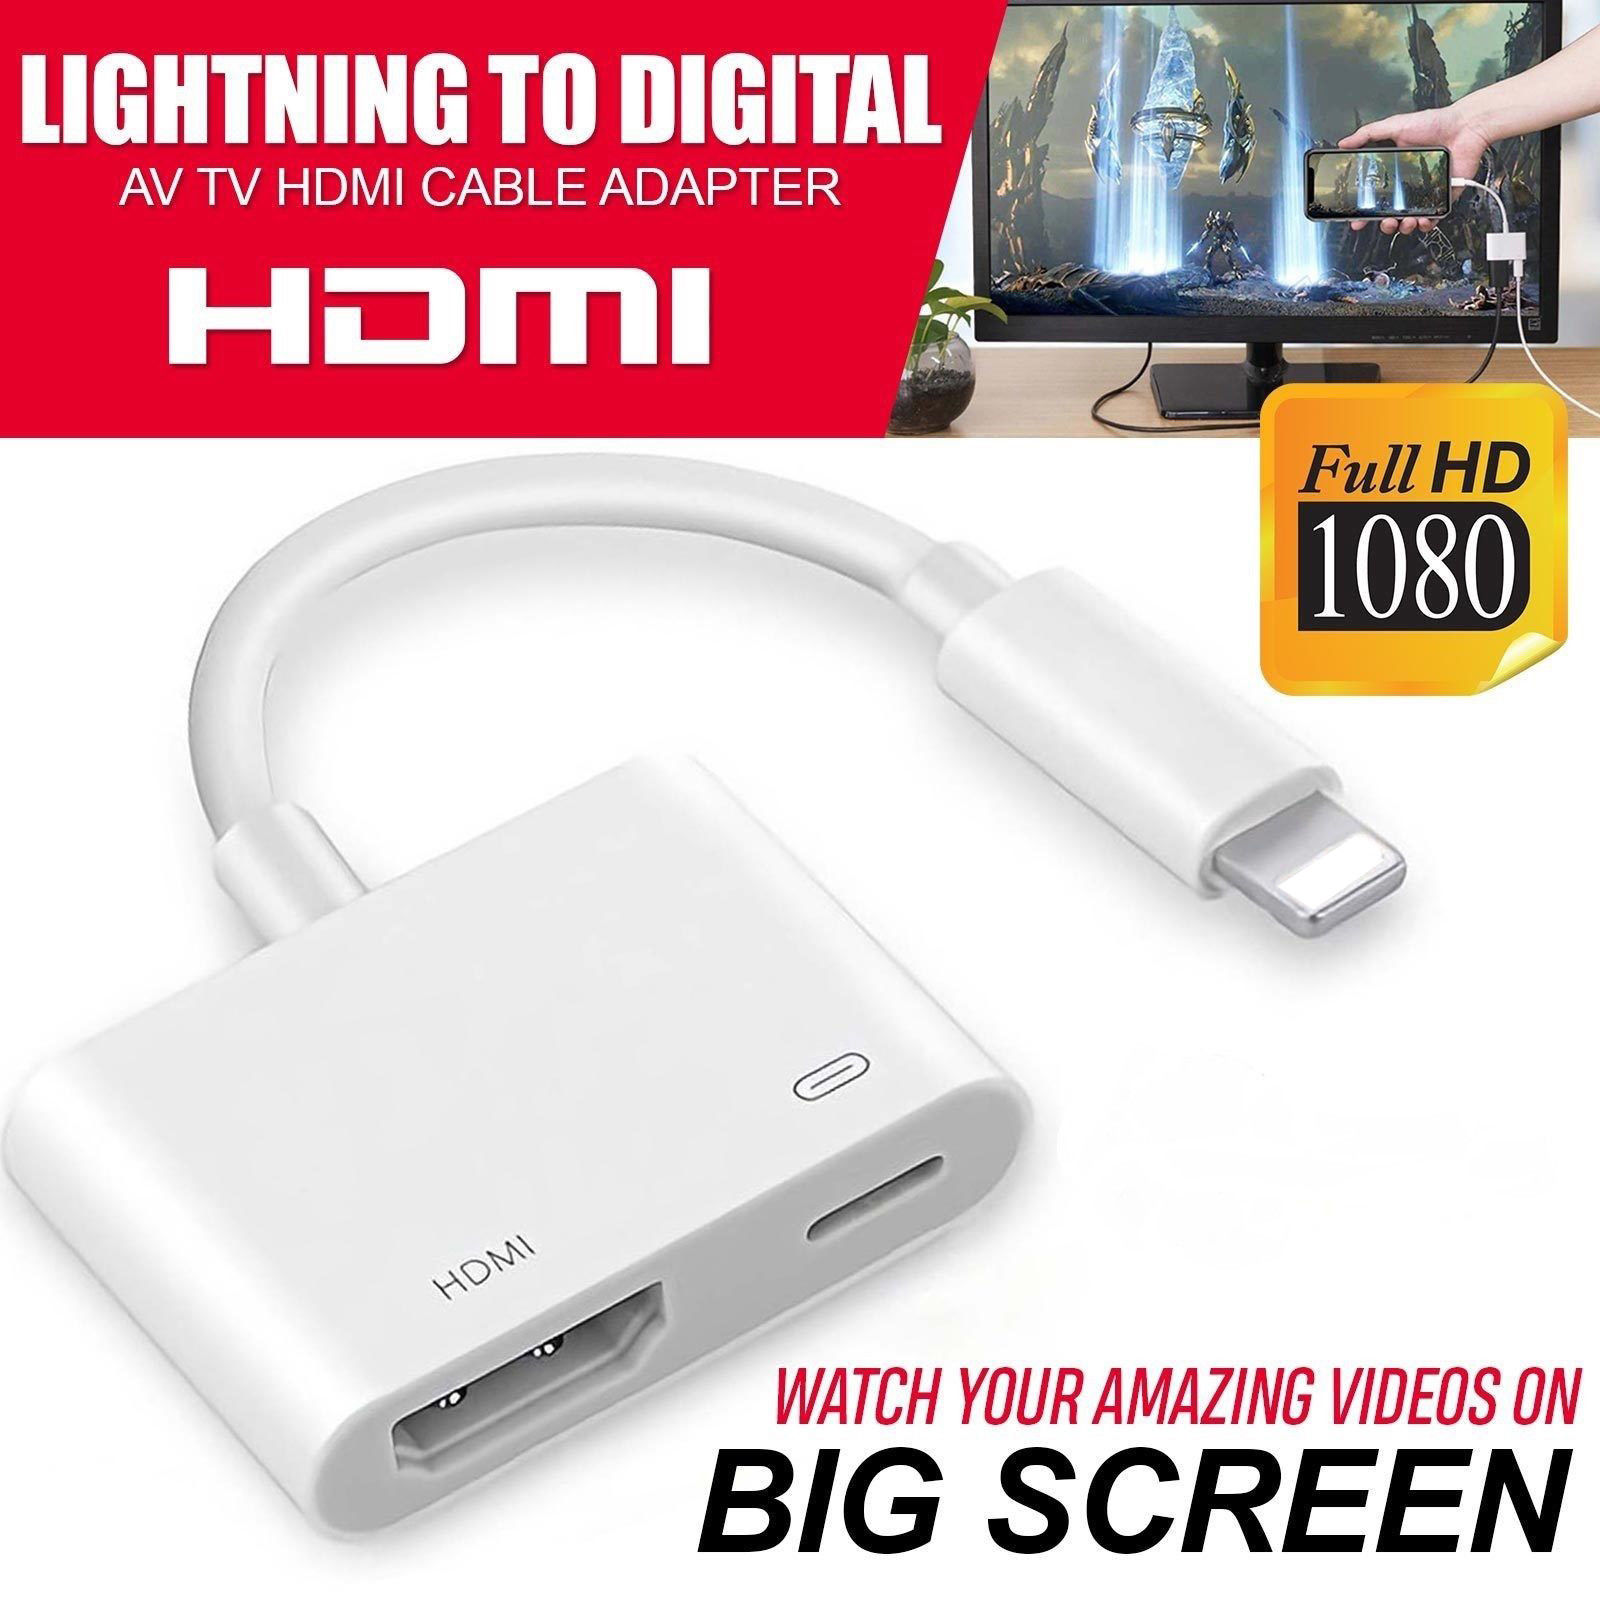 detailing 74c18 097c8 Details about 1080P To HDMI Digital AV TV Cable Adapter For iPad iPhone 8 7